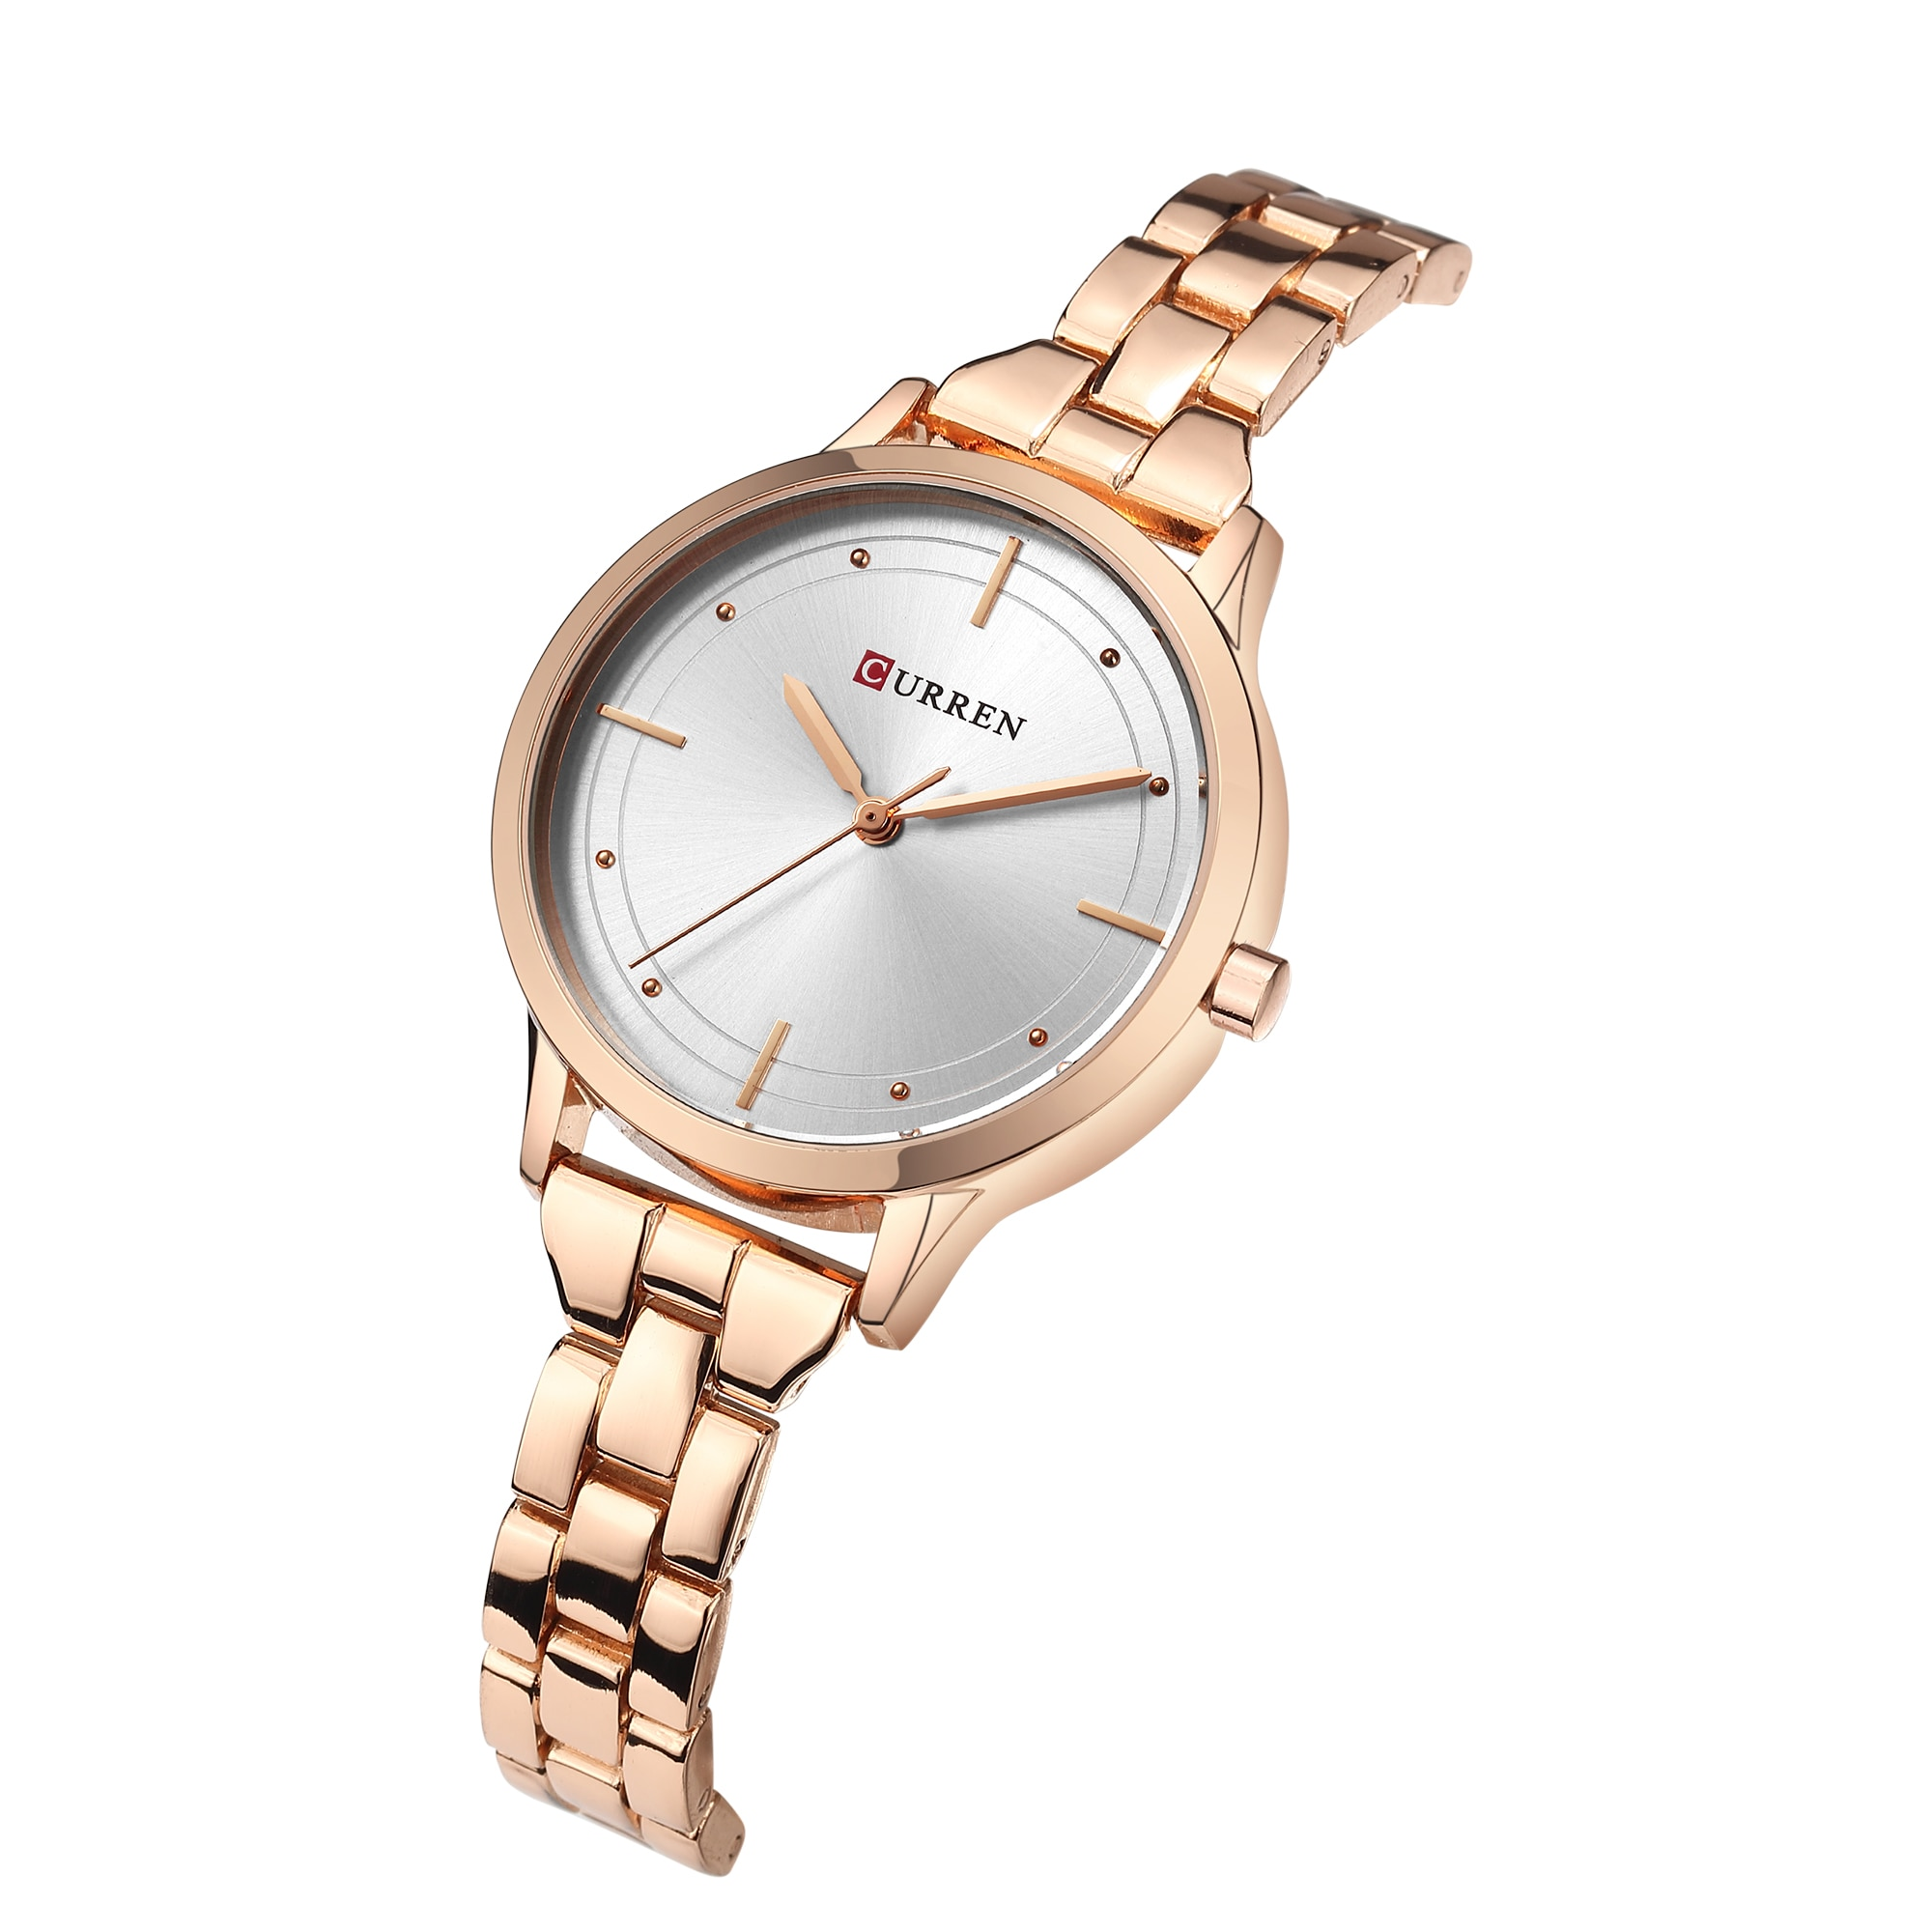 CURREN Relogio Feminino Stainless Steel Casual Women Romantic Gift Watches Top Brand Fashion Ladies Wristwatches Montre Femme